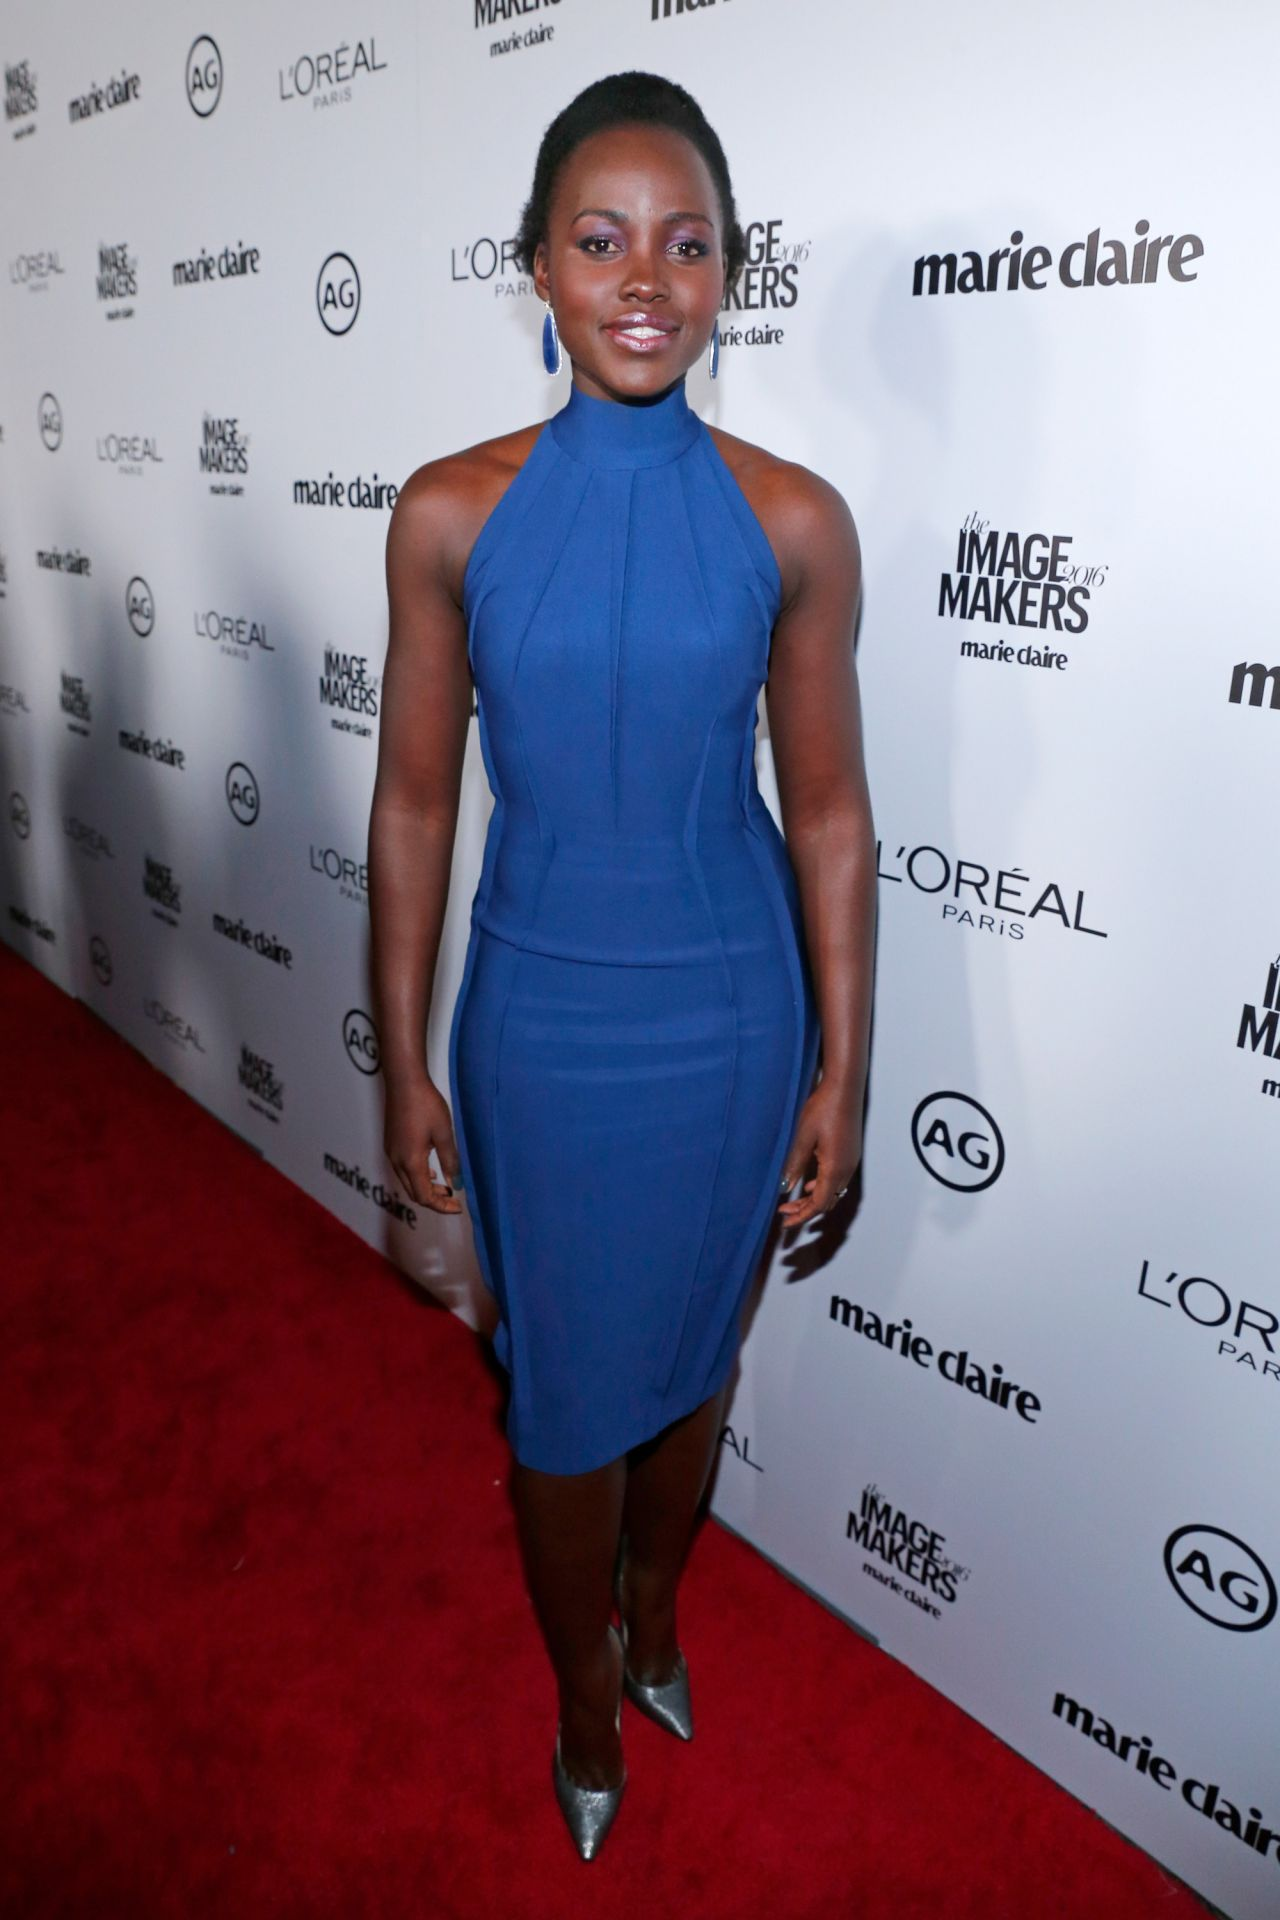 lupita-nyong-o-inaugural-image-maker-awards-hosted-by-marie-claire-in-los-angeles-1-12-2016-8